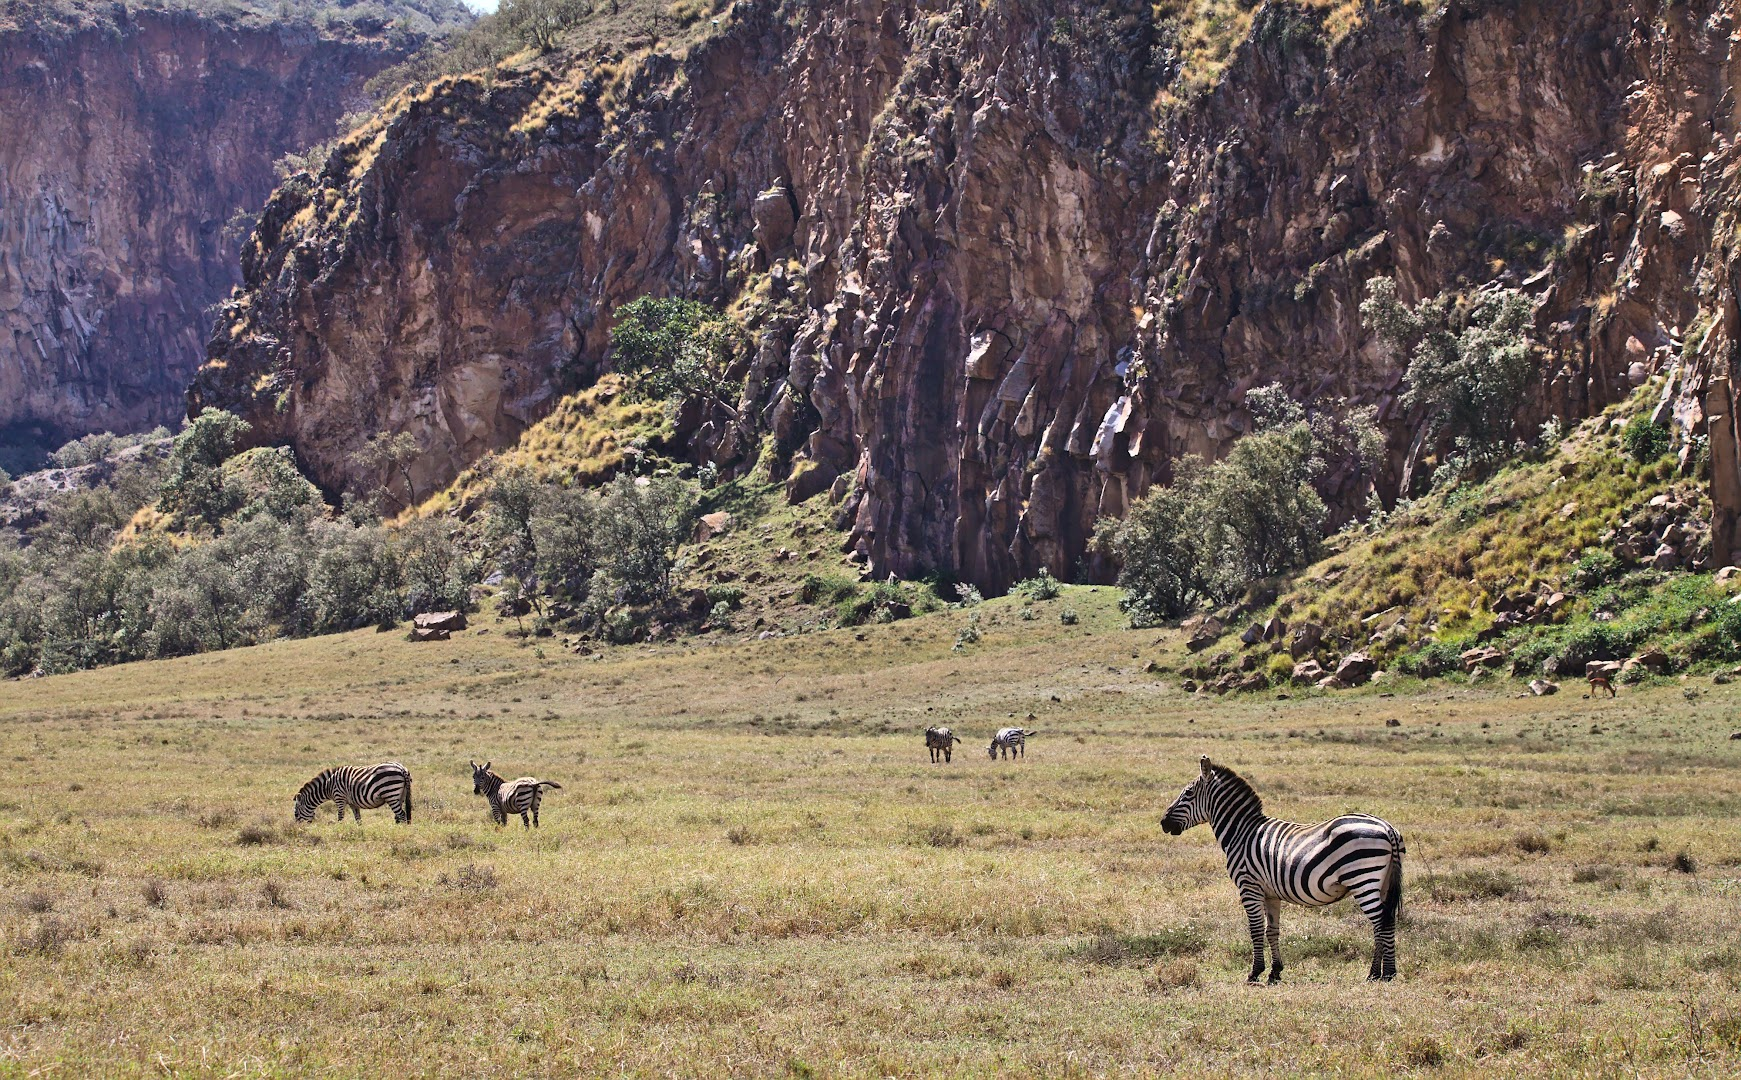 Hell's Gate has lots of zebras